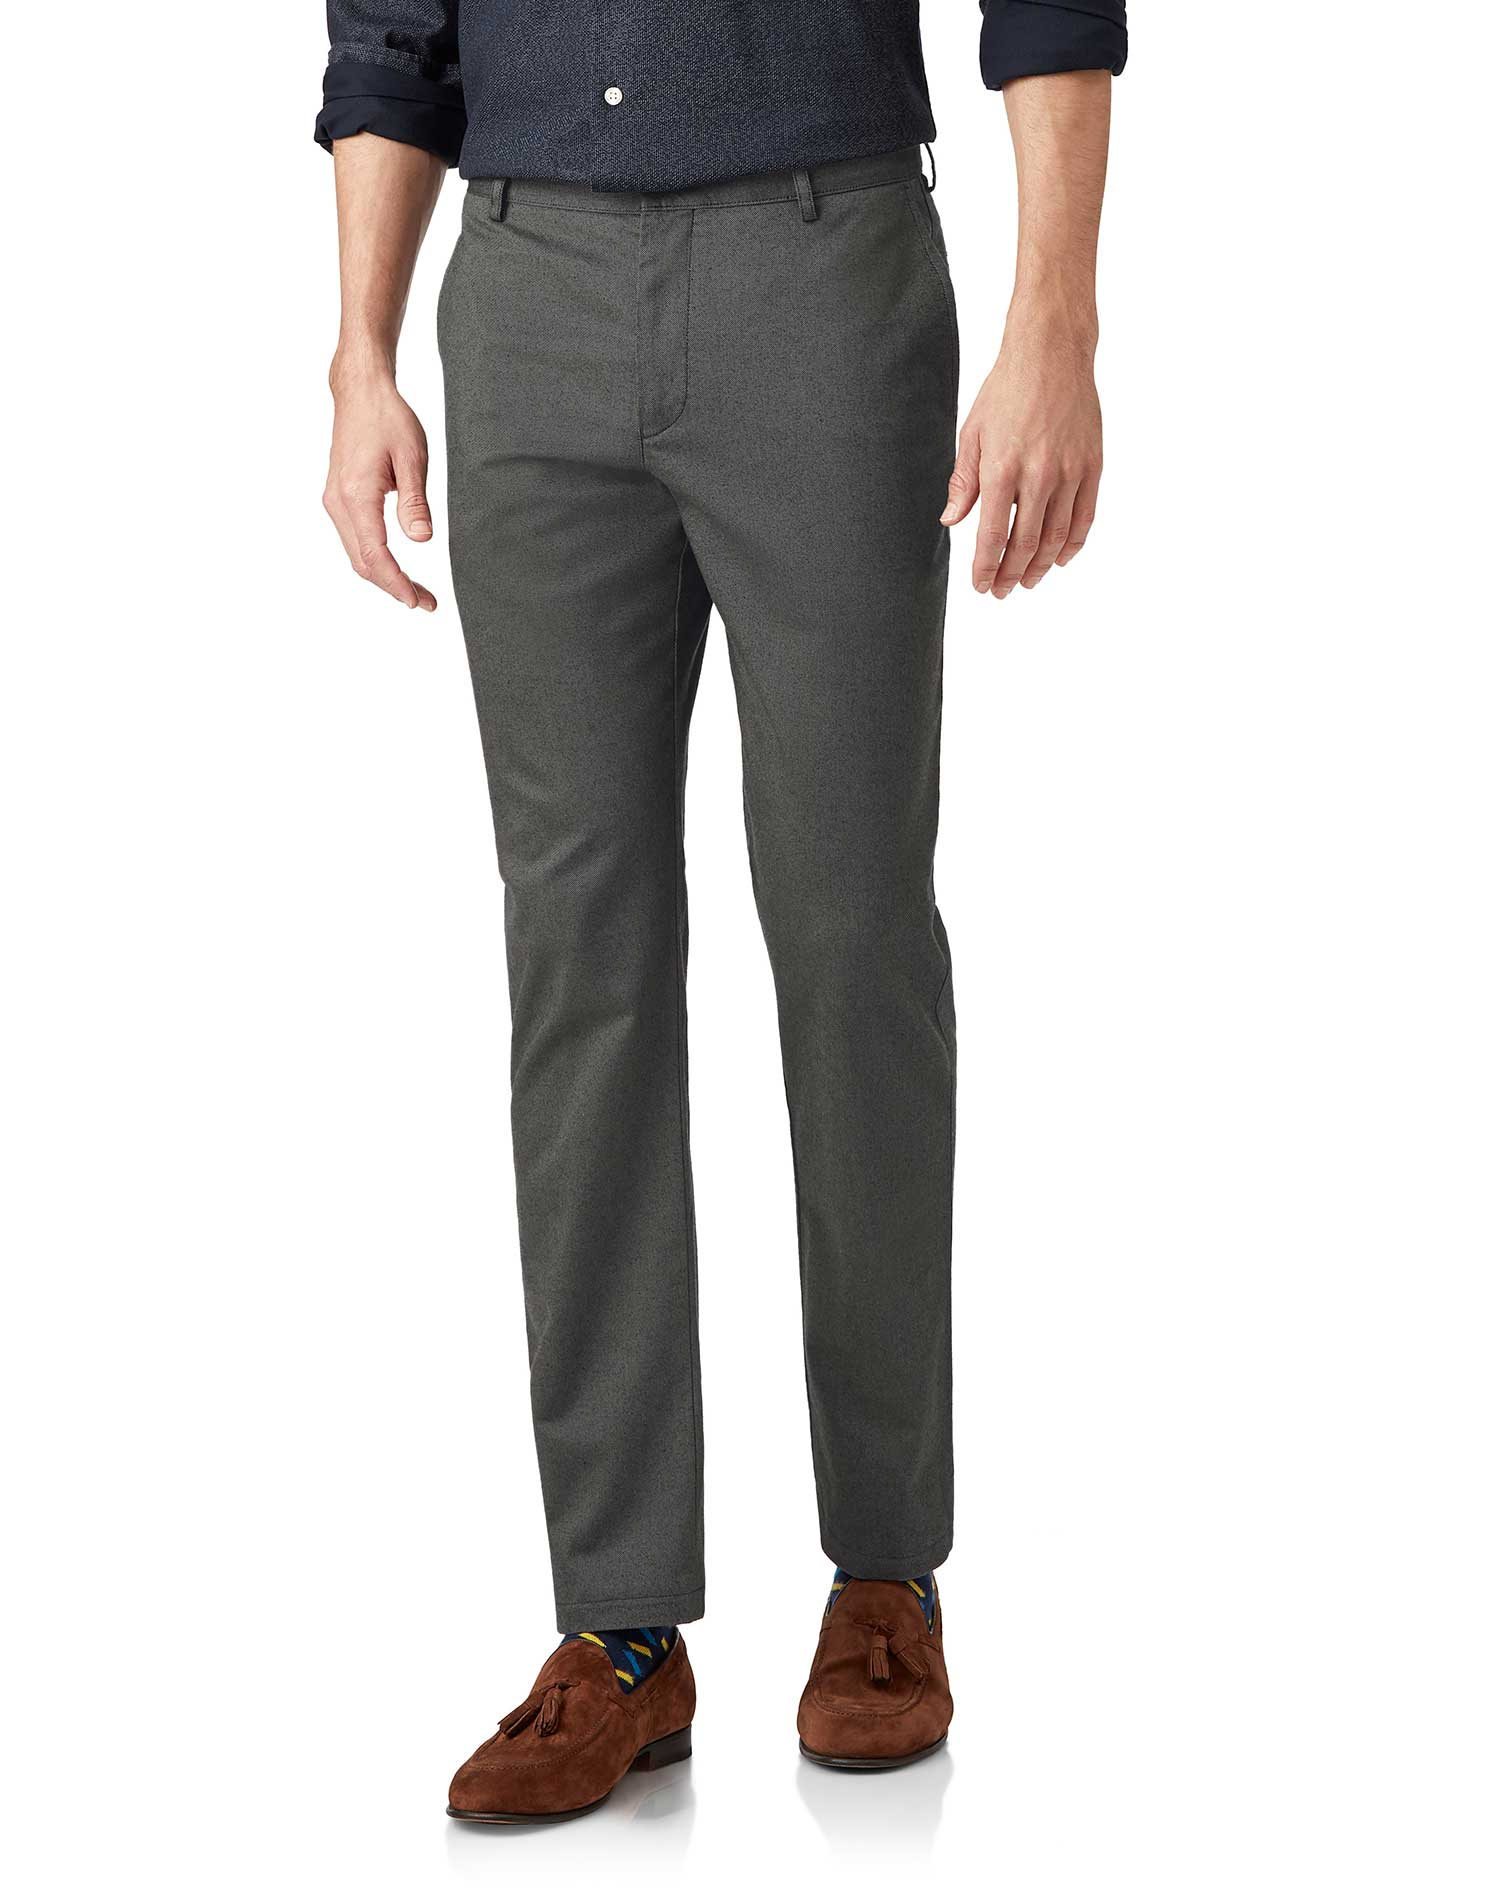 Cotton Grey Brushed Twill Stretch Trousers